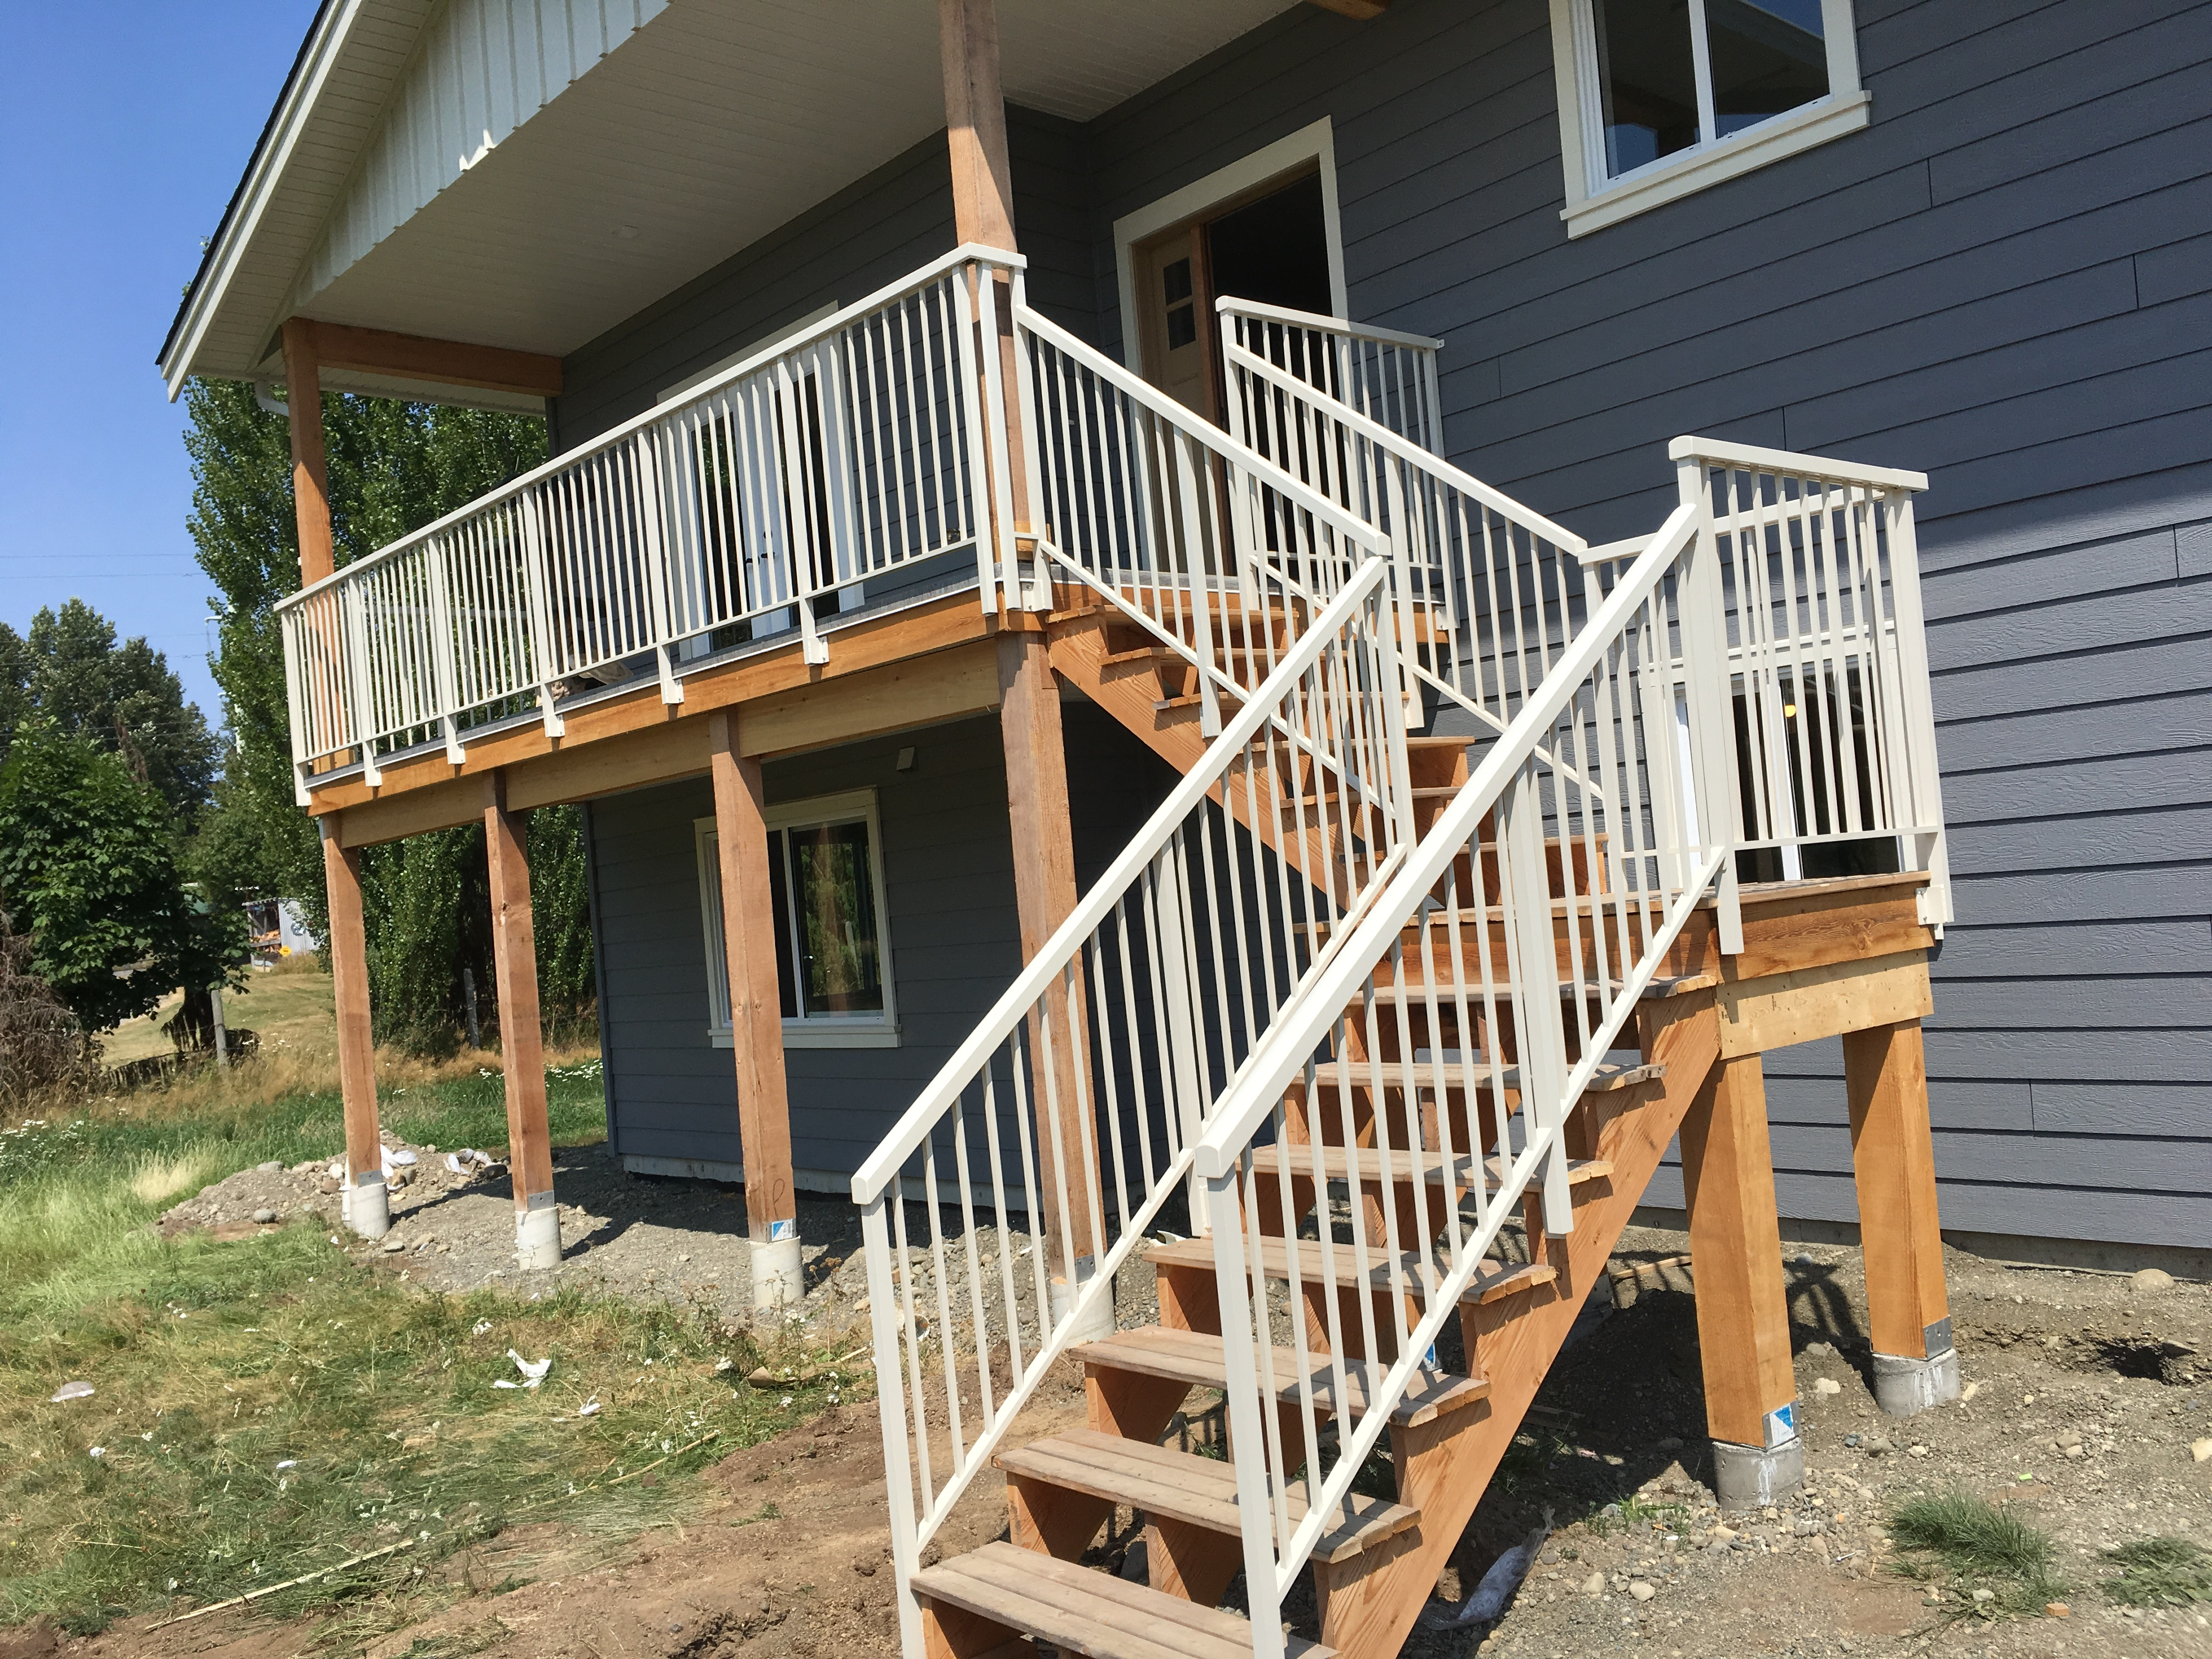 79.Aluminum powder coated railing.